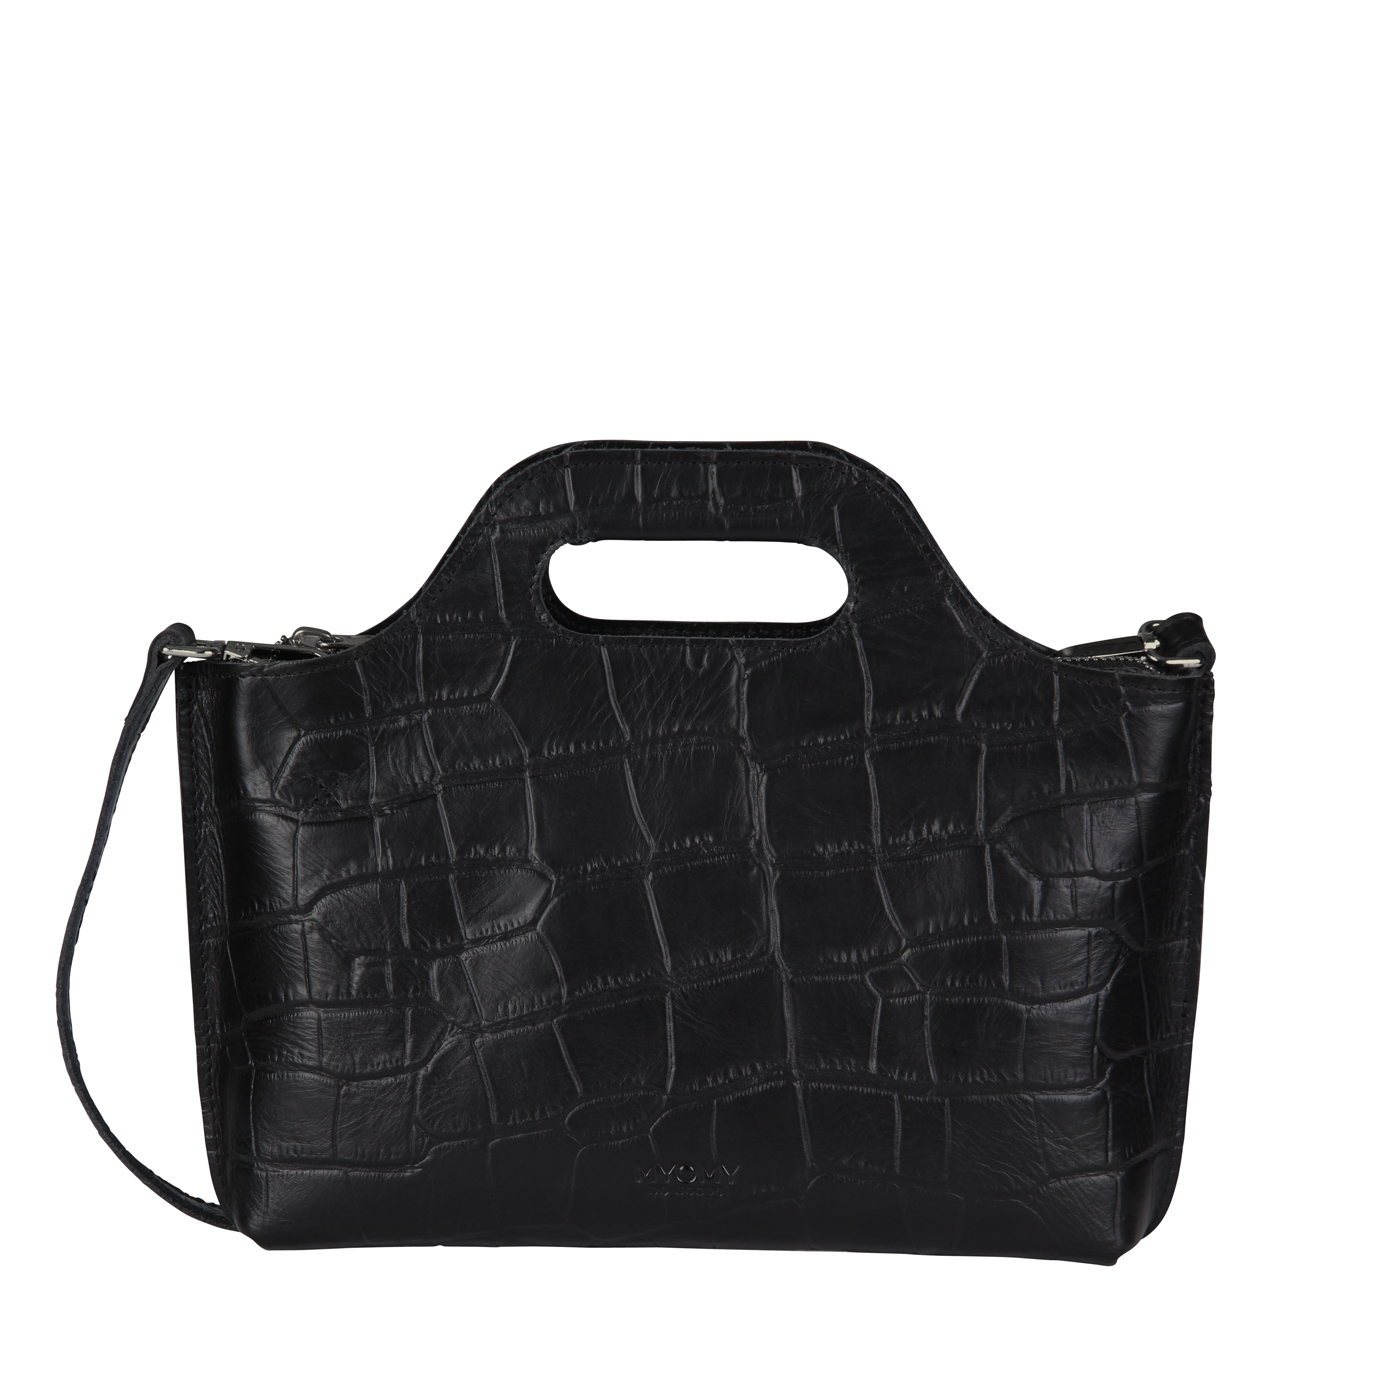 MY CARRY BAG Mini – croco black